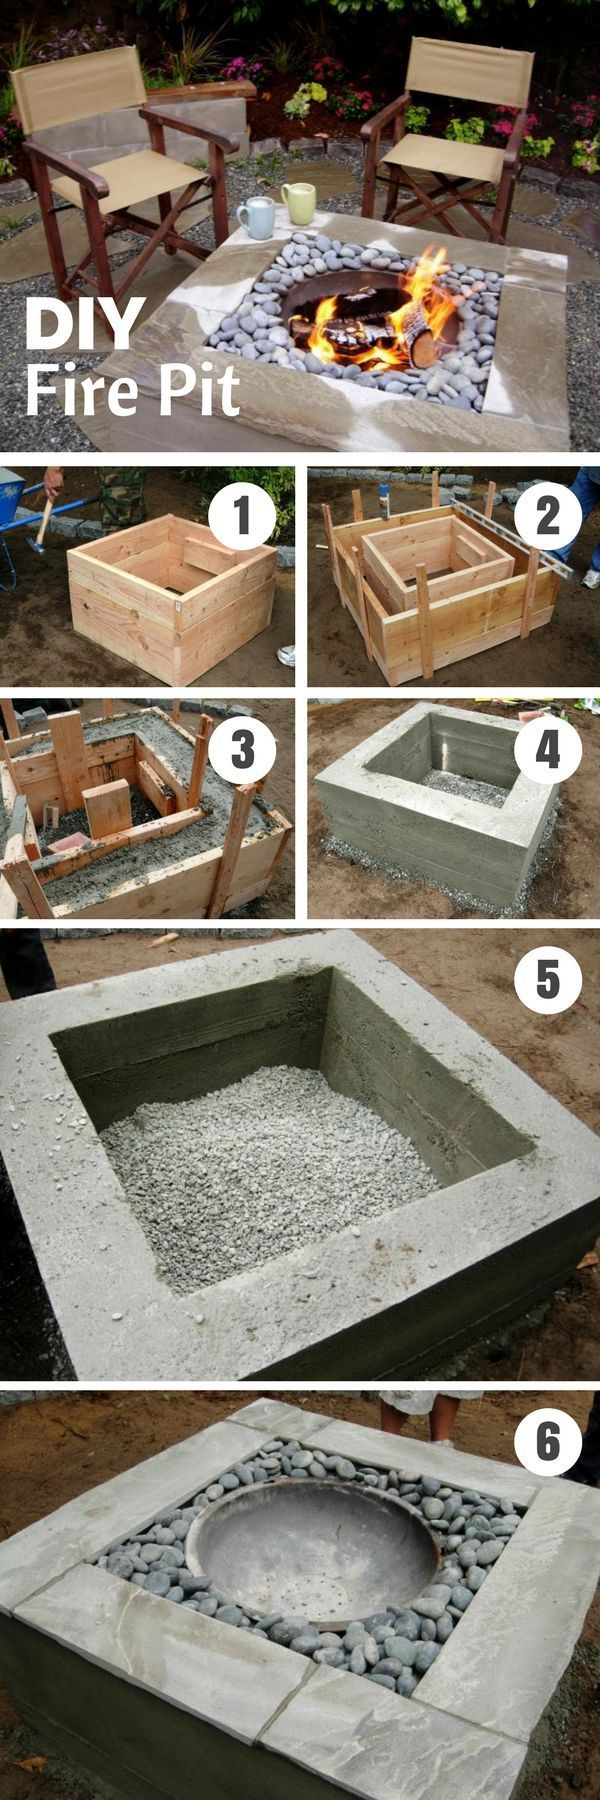 Check out the tutorial on how to make a DIY modern style fire pit @istandarddesign (best outdoor furniture diy projects) #outdoordiyfirepit